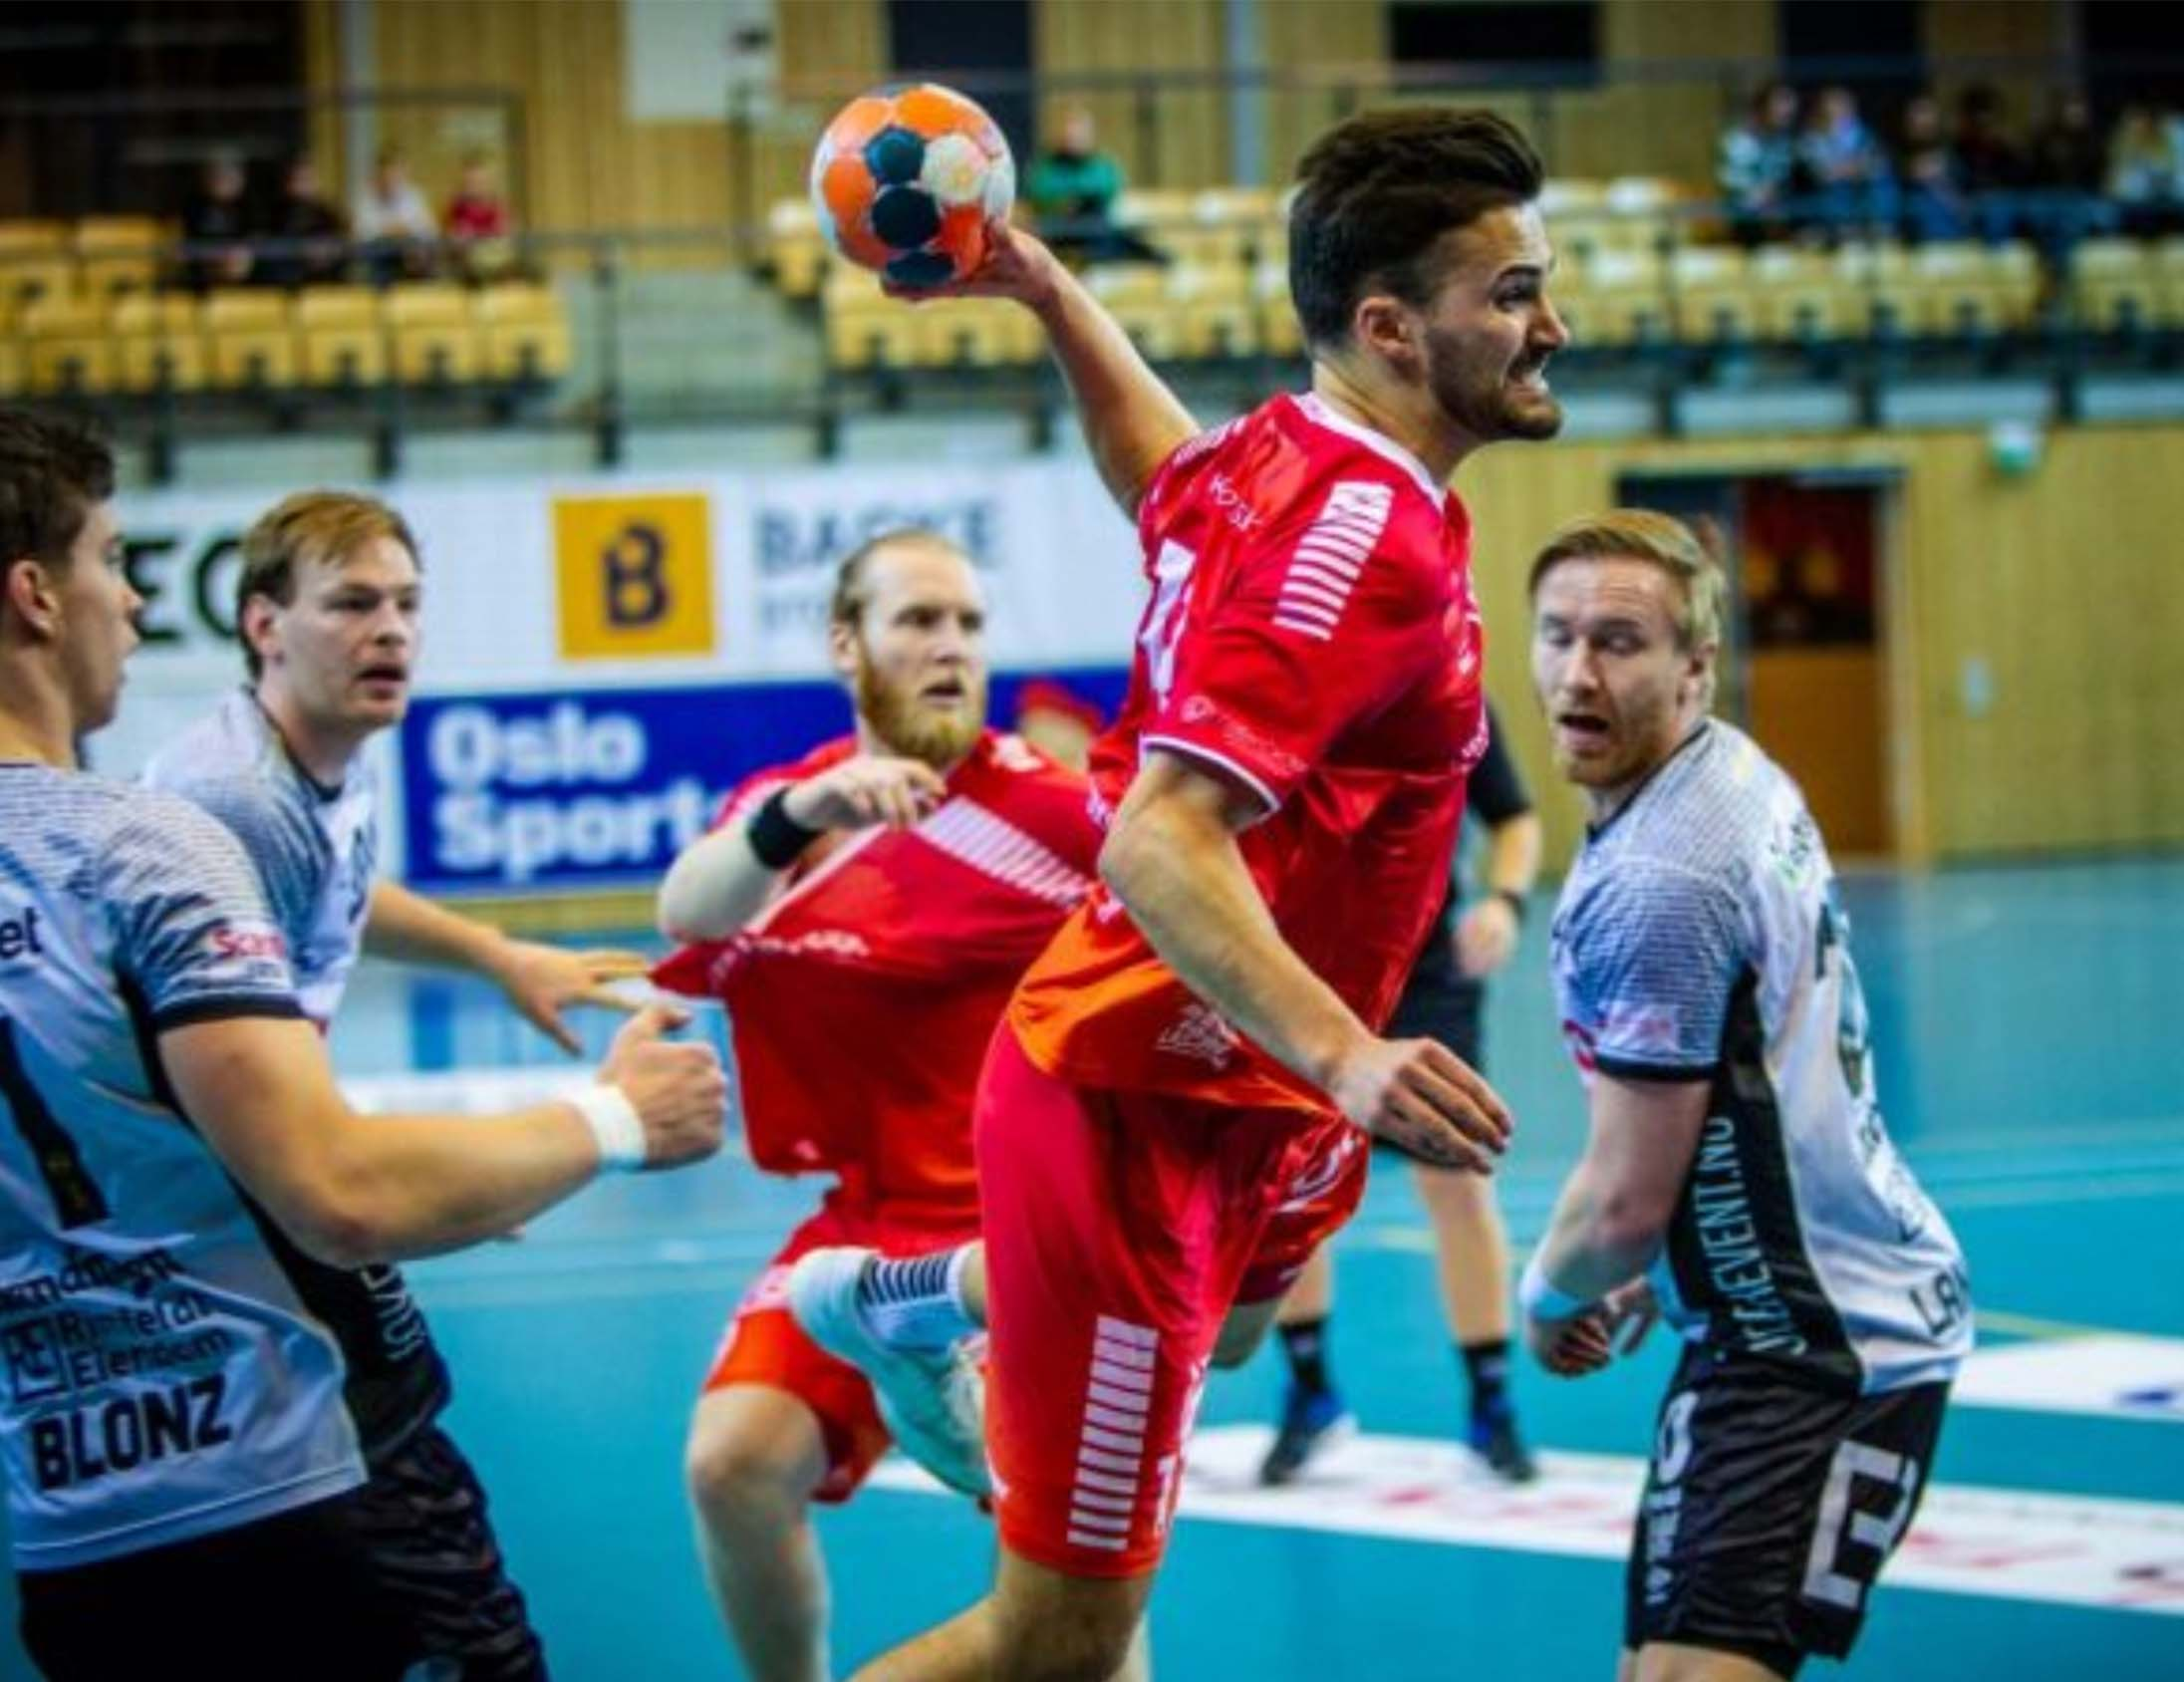 Haslum IL Handball players gain an edge with Performa Sports